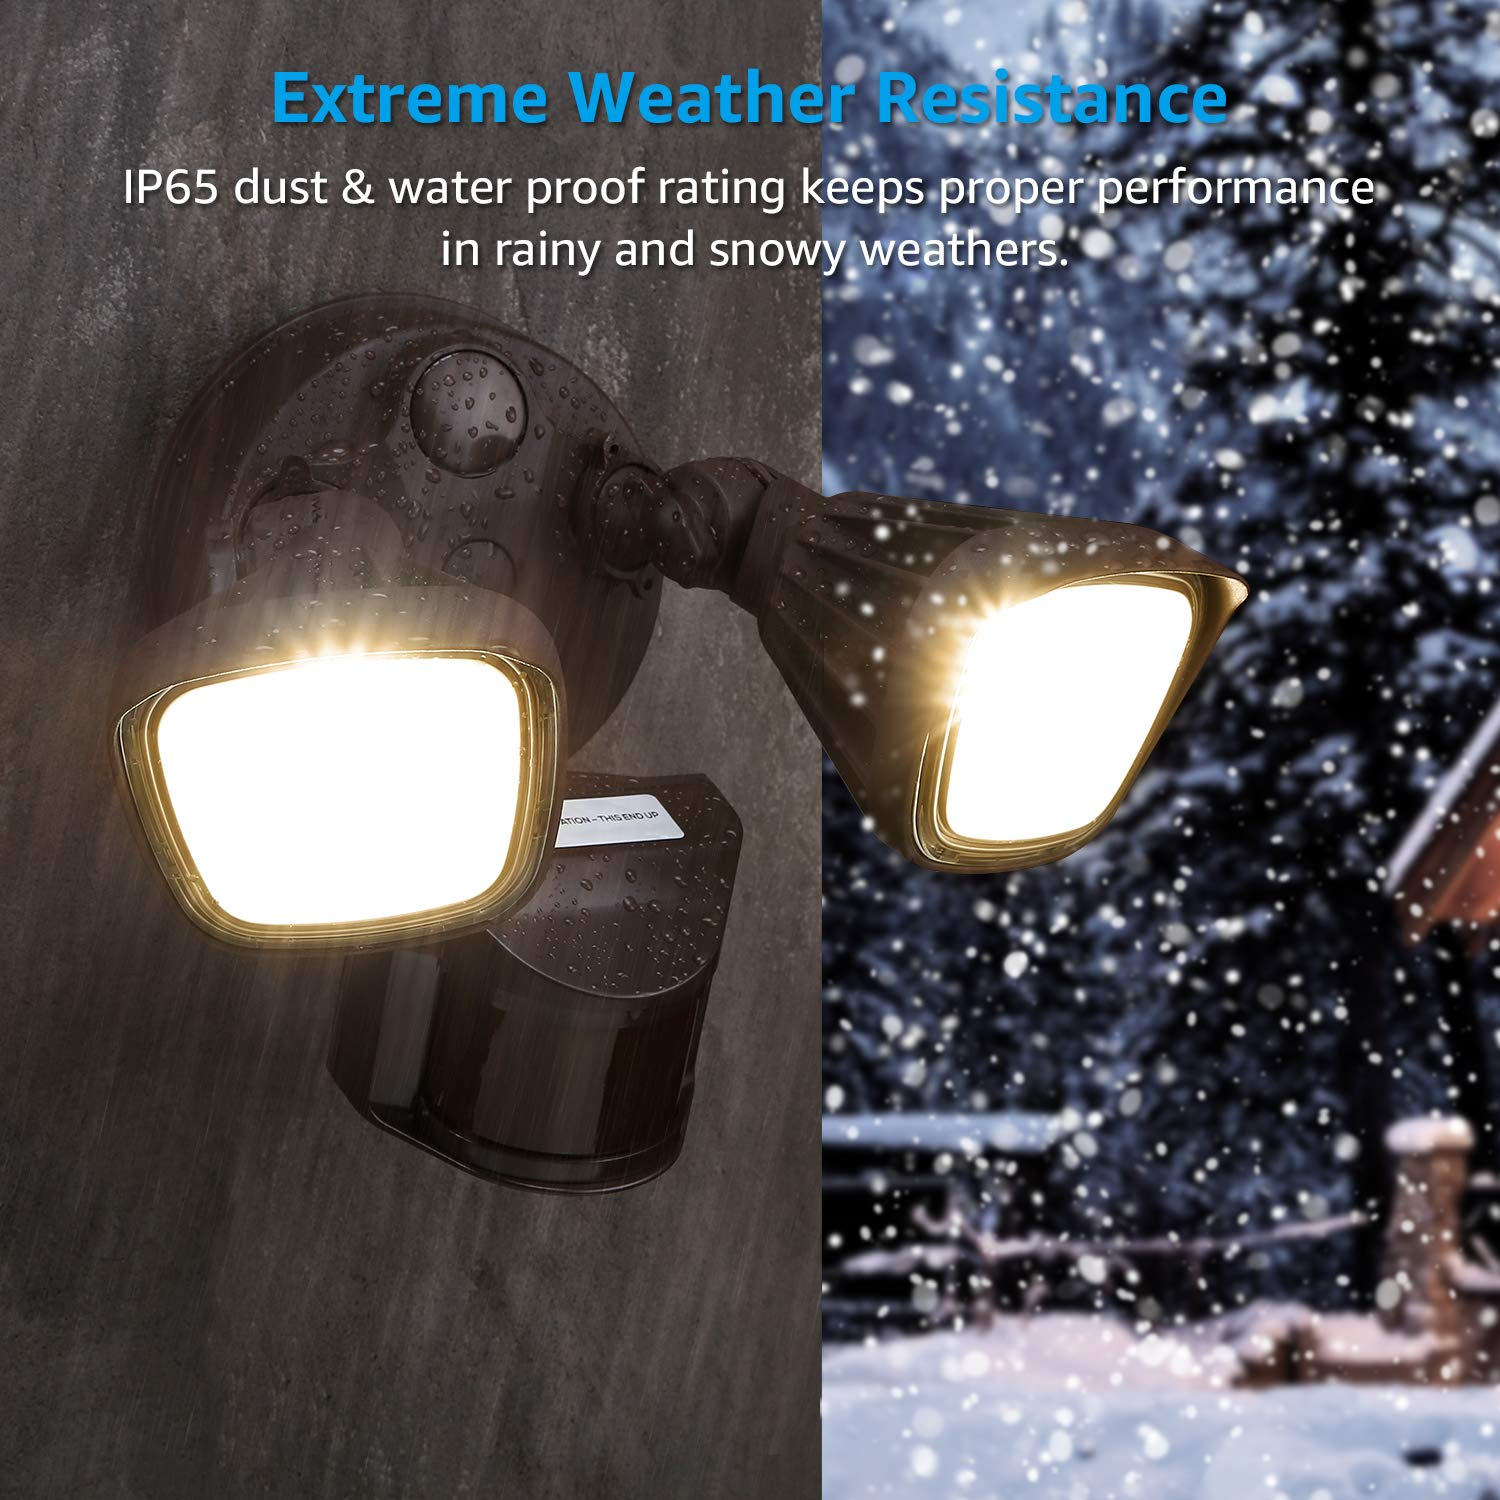 Patios 2300lm Floodlight for Entryways White LHSCT-30WRSS50-WHT 5000K Daylight Decks 150W Halogen Equivalent LEONLITE 30W 3-Head Motion Activated LED Outdoor Security Light 3 Modes Stairs Photo Sensor